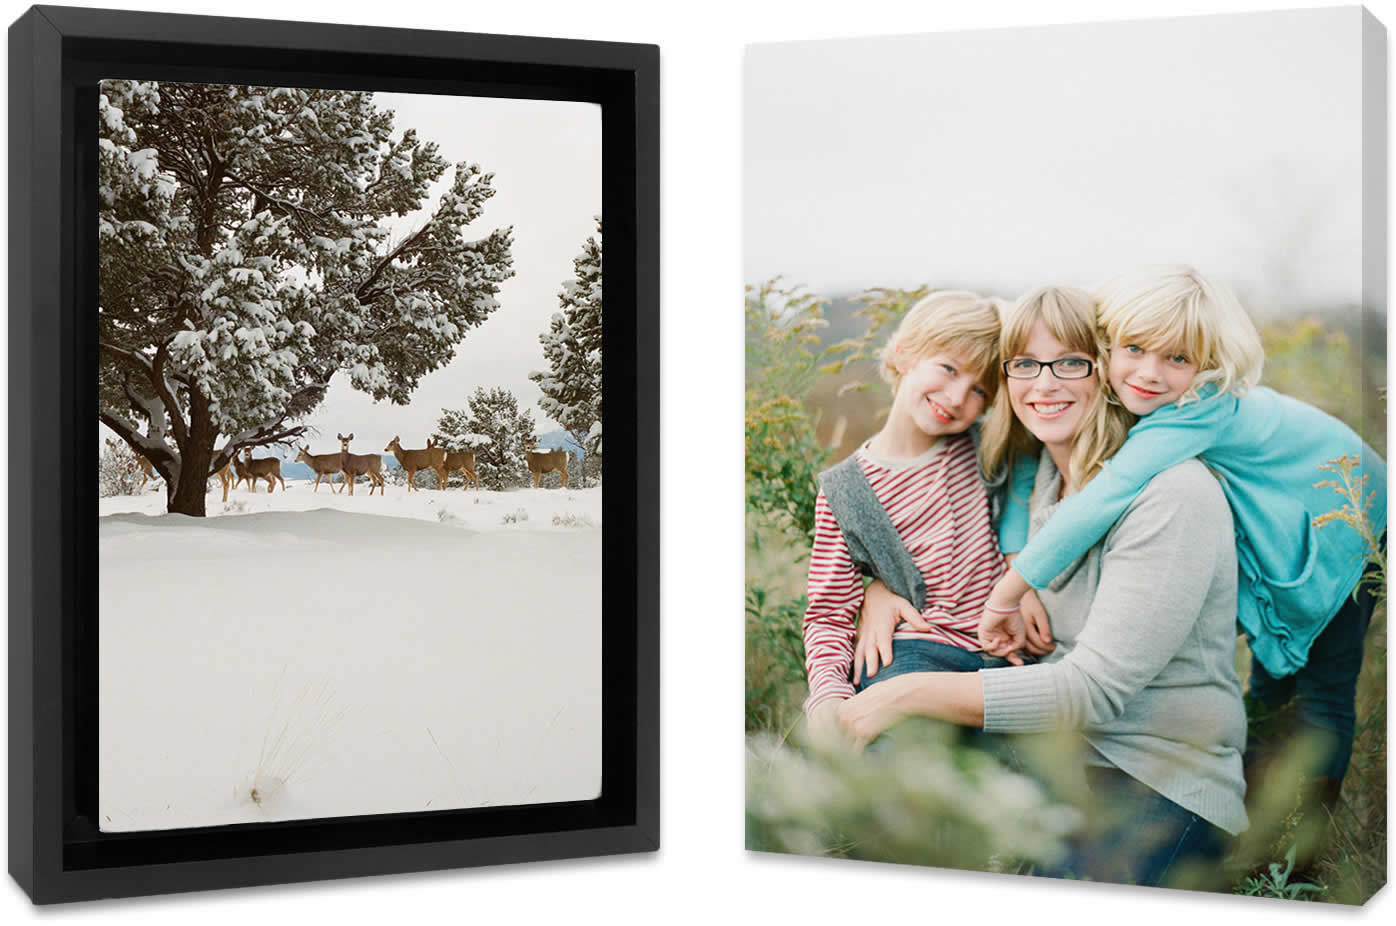 Making a gallery wrapped canvas print from a favorite photo is a great personalized gift.  With a few clicks you can order a high quality canvas print framed or wrapped. I have bought a dozen of these as gifts and they never disappoint. It's...